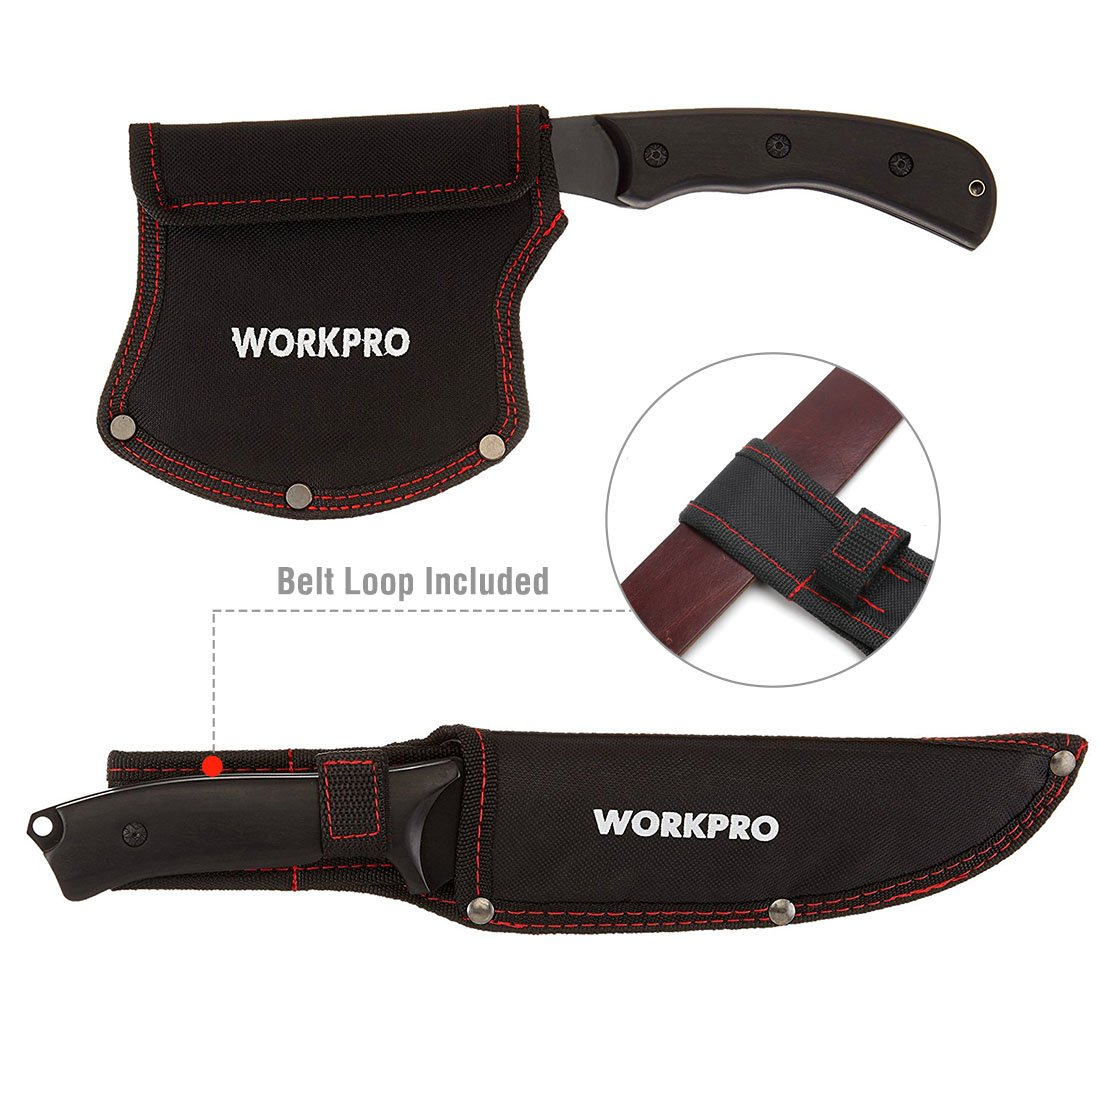 WORKPRO Axe and Fixed Blade Knife Combo Set Full Tang Wood Handle for Outdoor Camping Survival Hunting, Nylon Sheath Included by WORKPRO (Image #4)